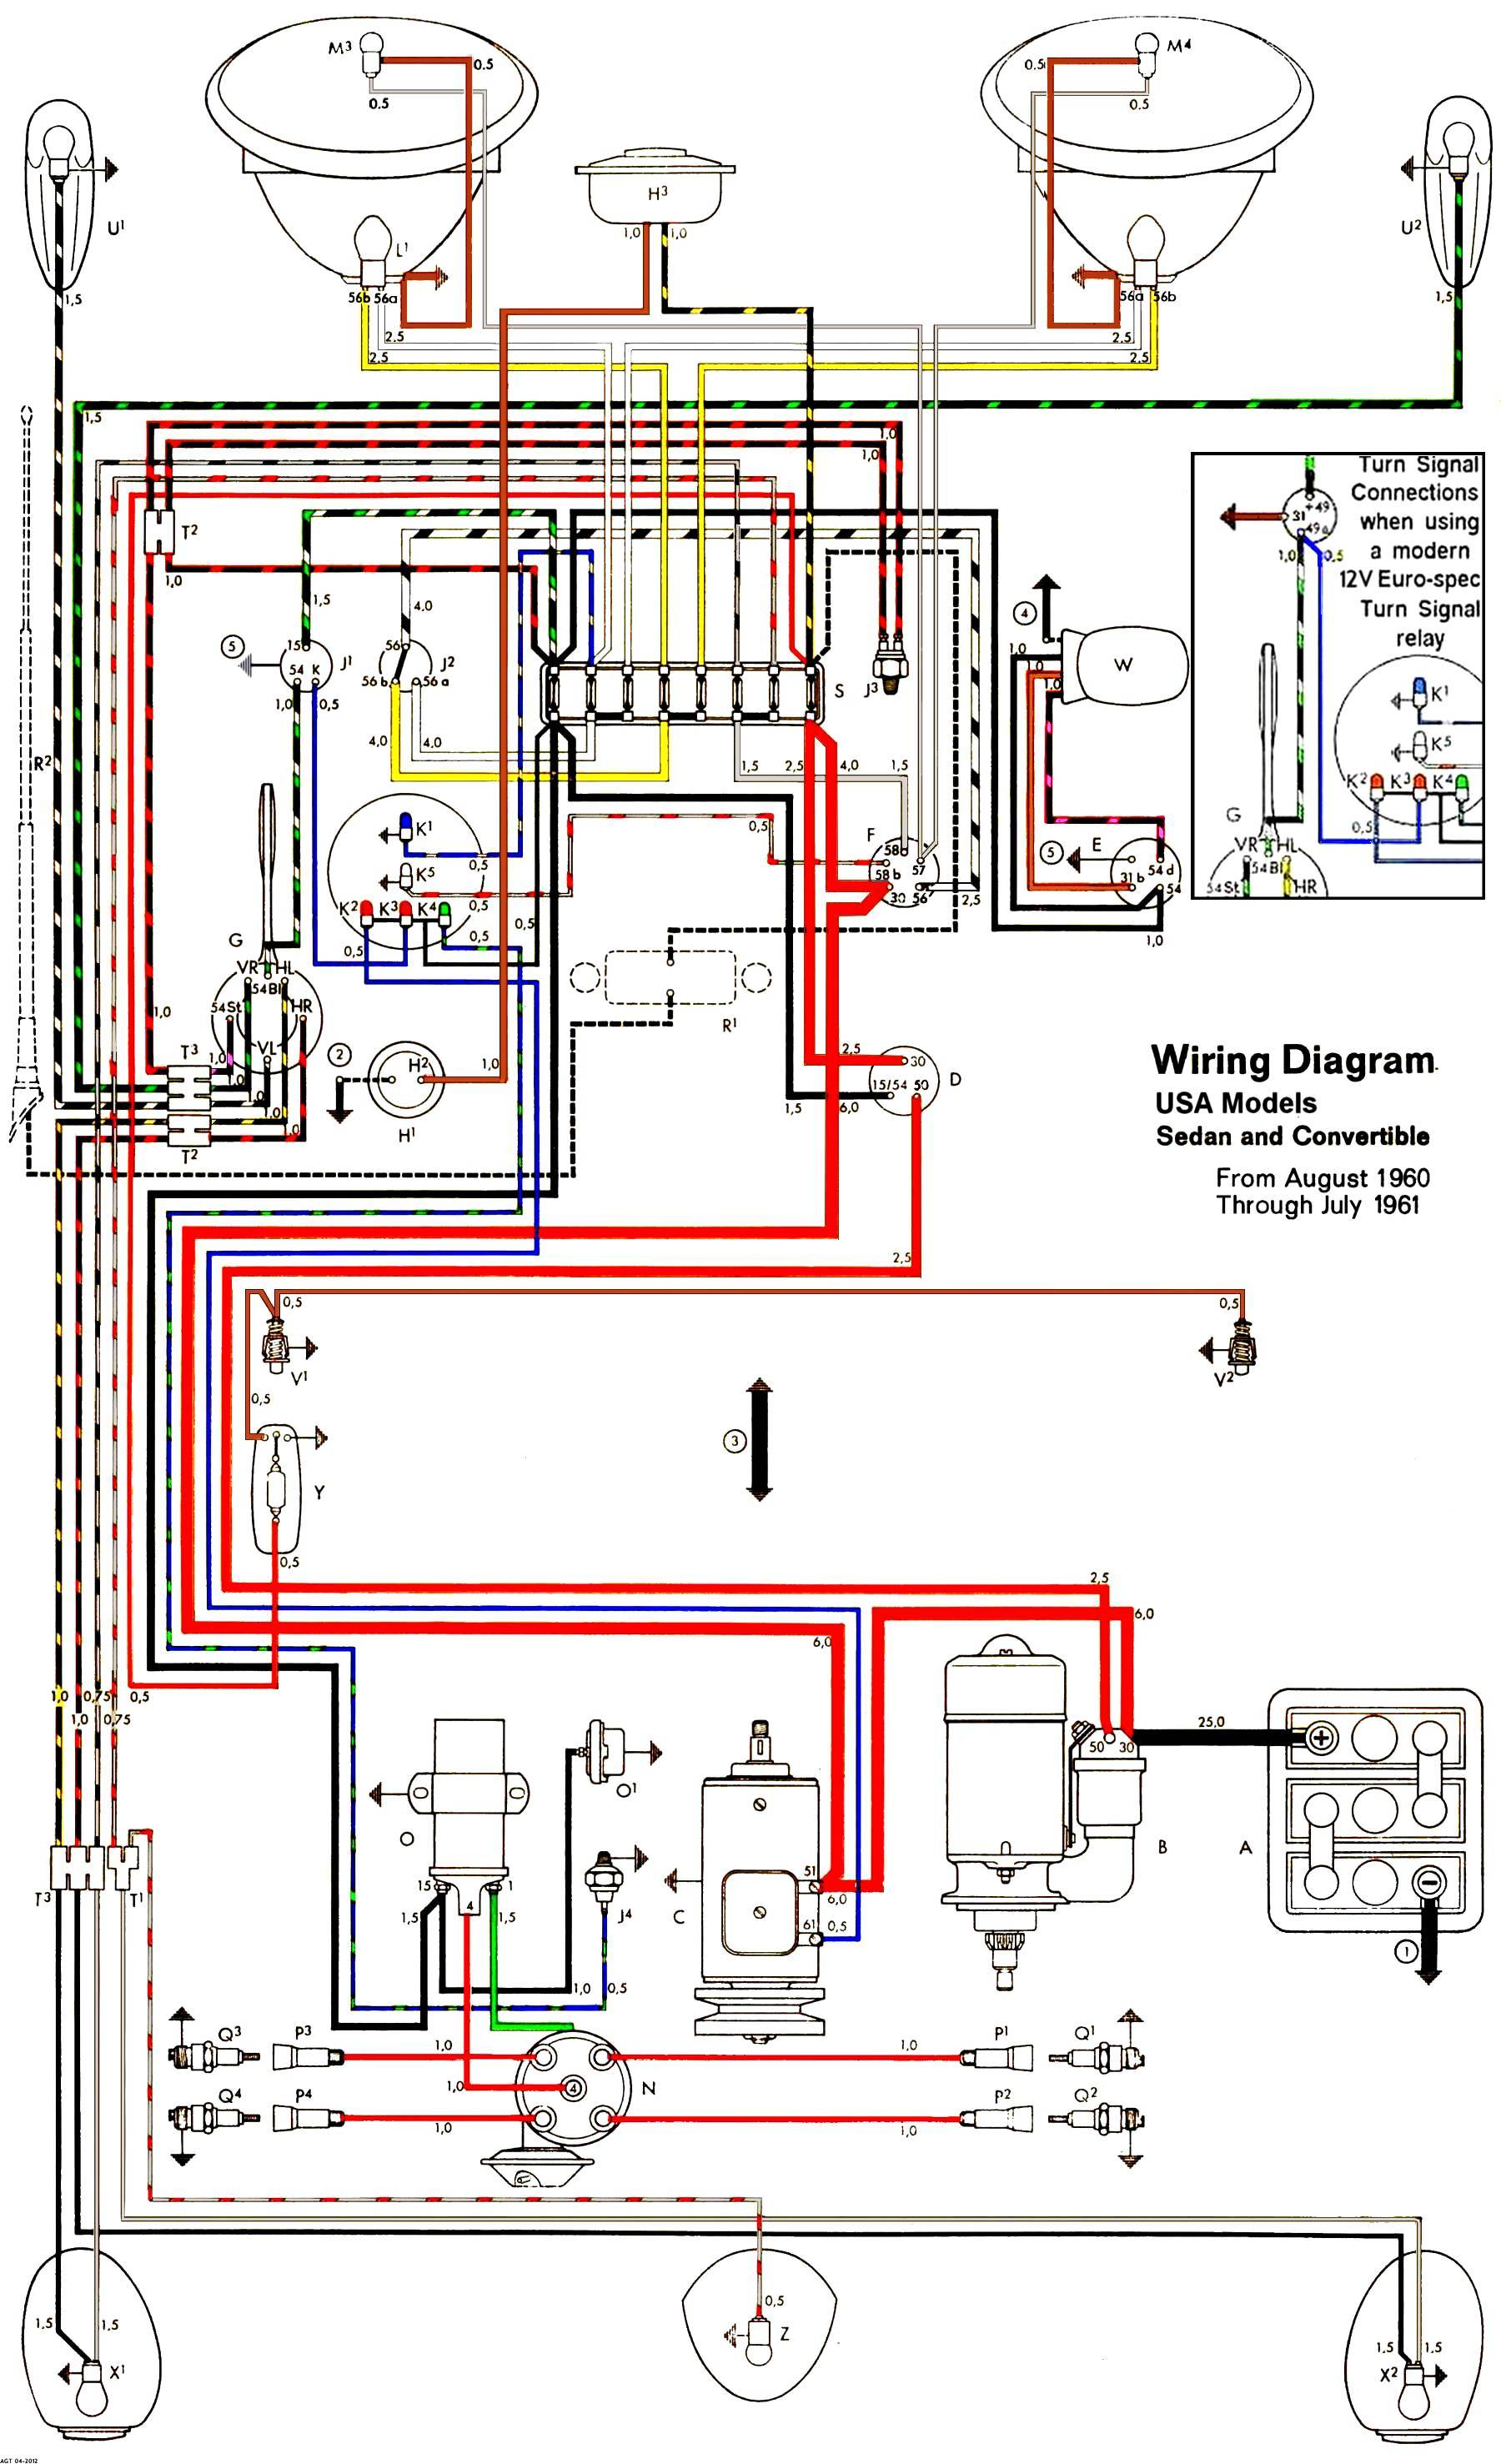 1961USA T1 t1 wiring diagram t1 pinout color code \u2022 wiring diagrams j 1970 vw beetle wiring harness at n-0.co